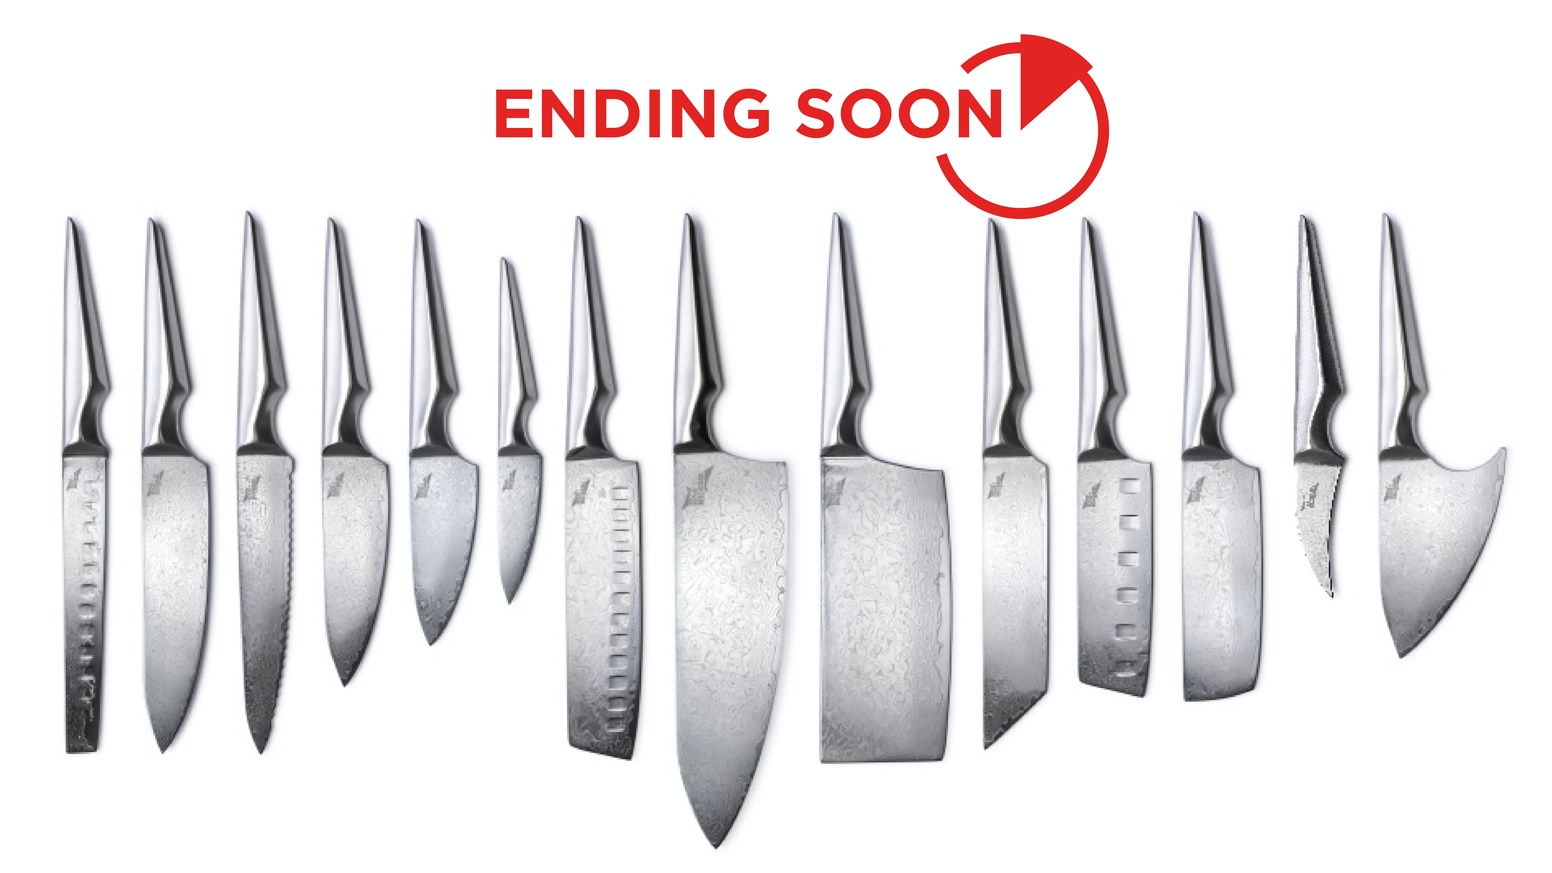 Shiroi Hana is Edge of Belgravia's new and improved chef knife collection. It combines Japanese steel with a polished Damascus blade!